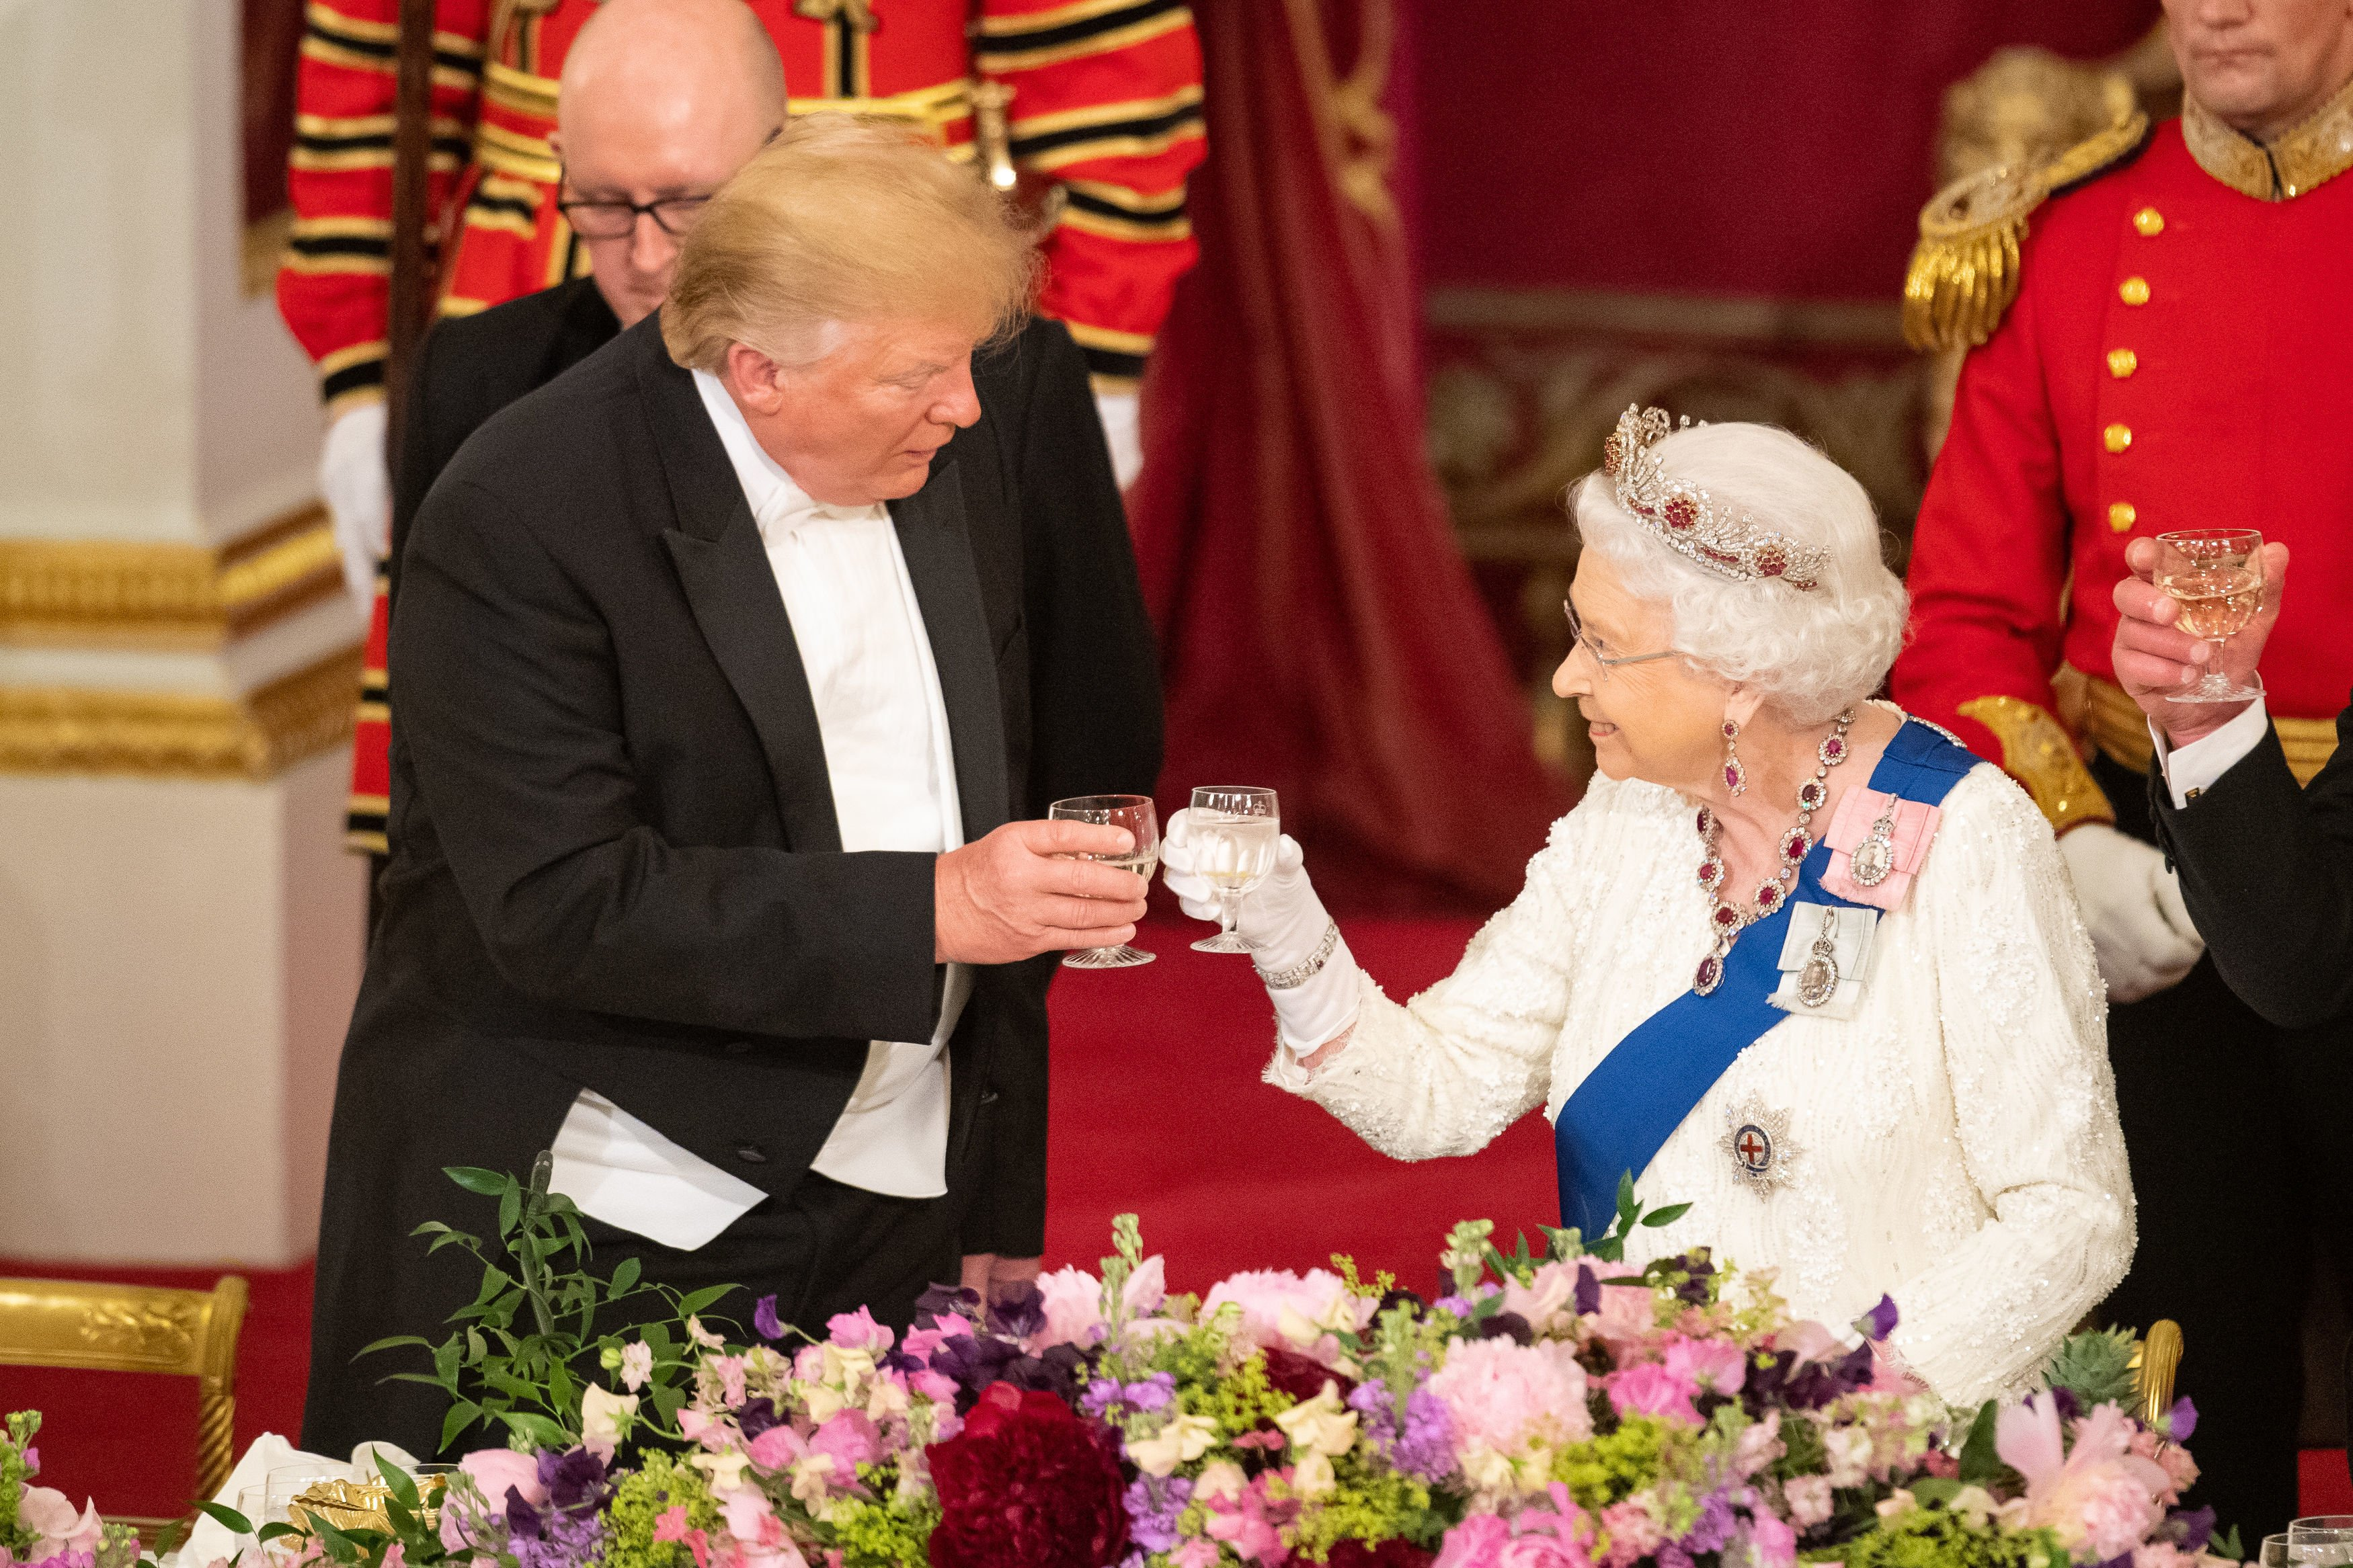 U.S. President Donald Trump and Queen Elizabeth II make a toast during a State Banquet at Buckingham Palace on June 3, 2019 in London, England. President Trump's three-day state visit will include lunch with the Queen, and a State Banquet at Buckingham Palace, as well as business meetings with the Prime Minister and the Duke of York, before travelling to Portsmouth to mark the 75th anniversary of the D-Day landings. (Photo by Dominic Lipinski- WPA Pool/Getty Images)